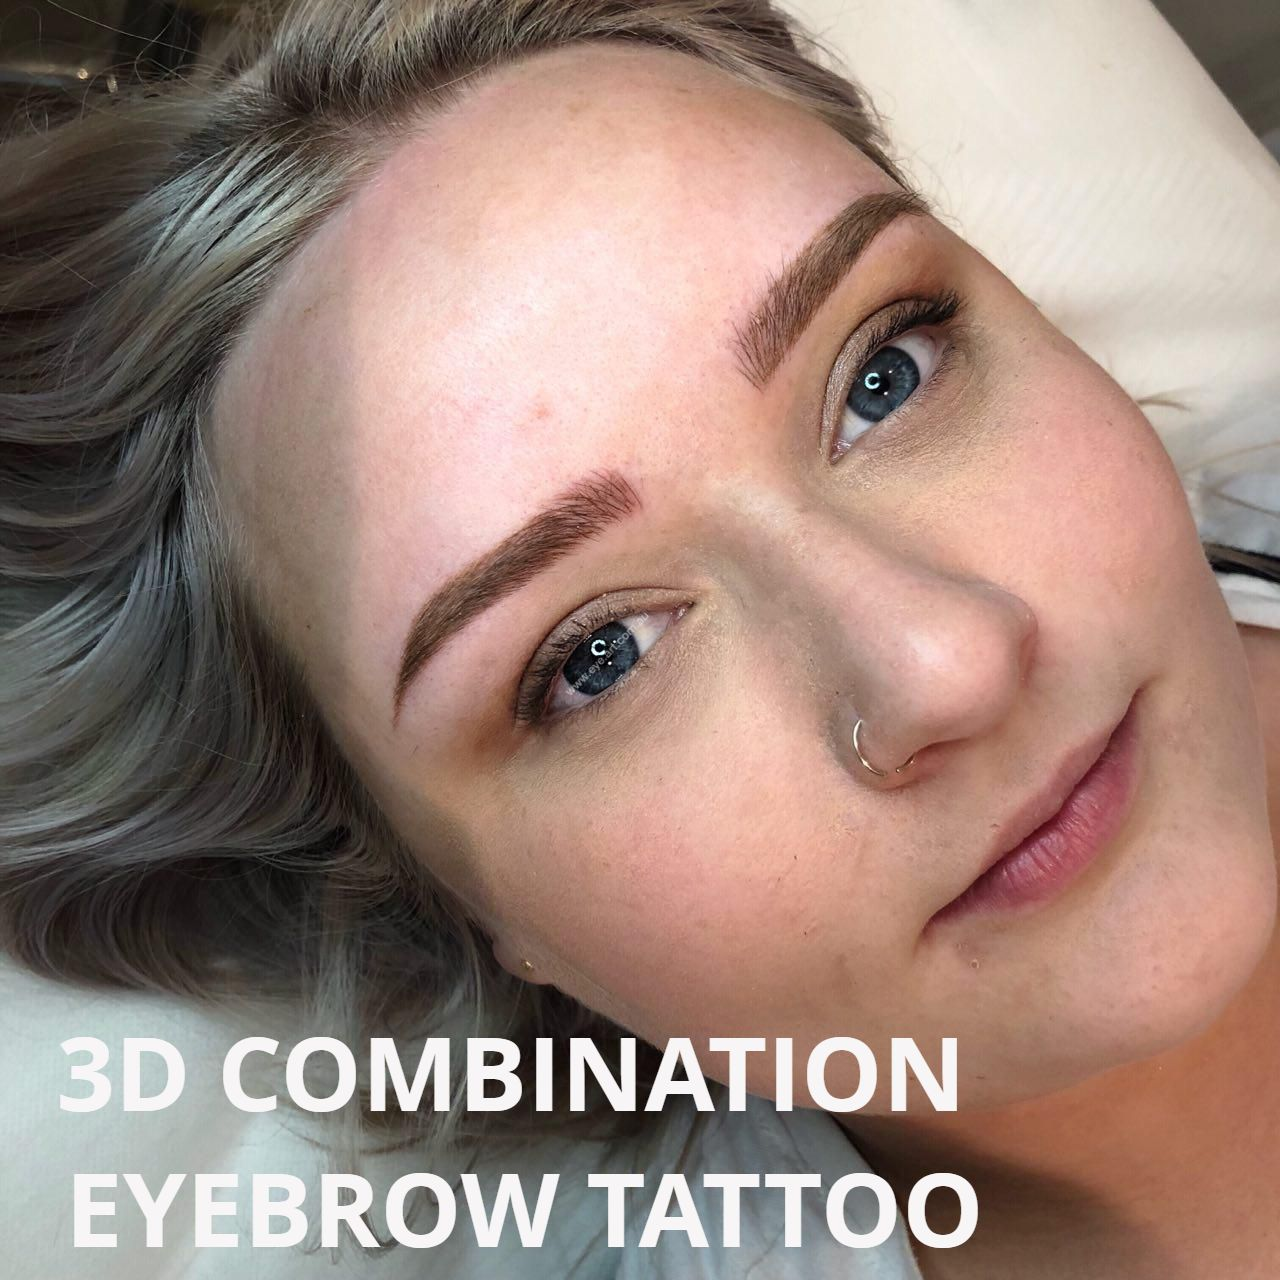 The Best Eyebrow Tattoo Places in Melbourne